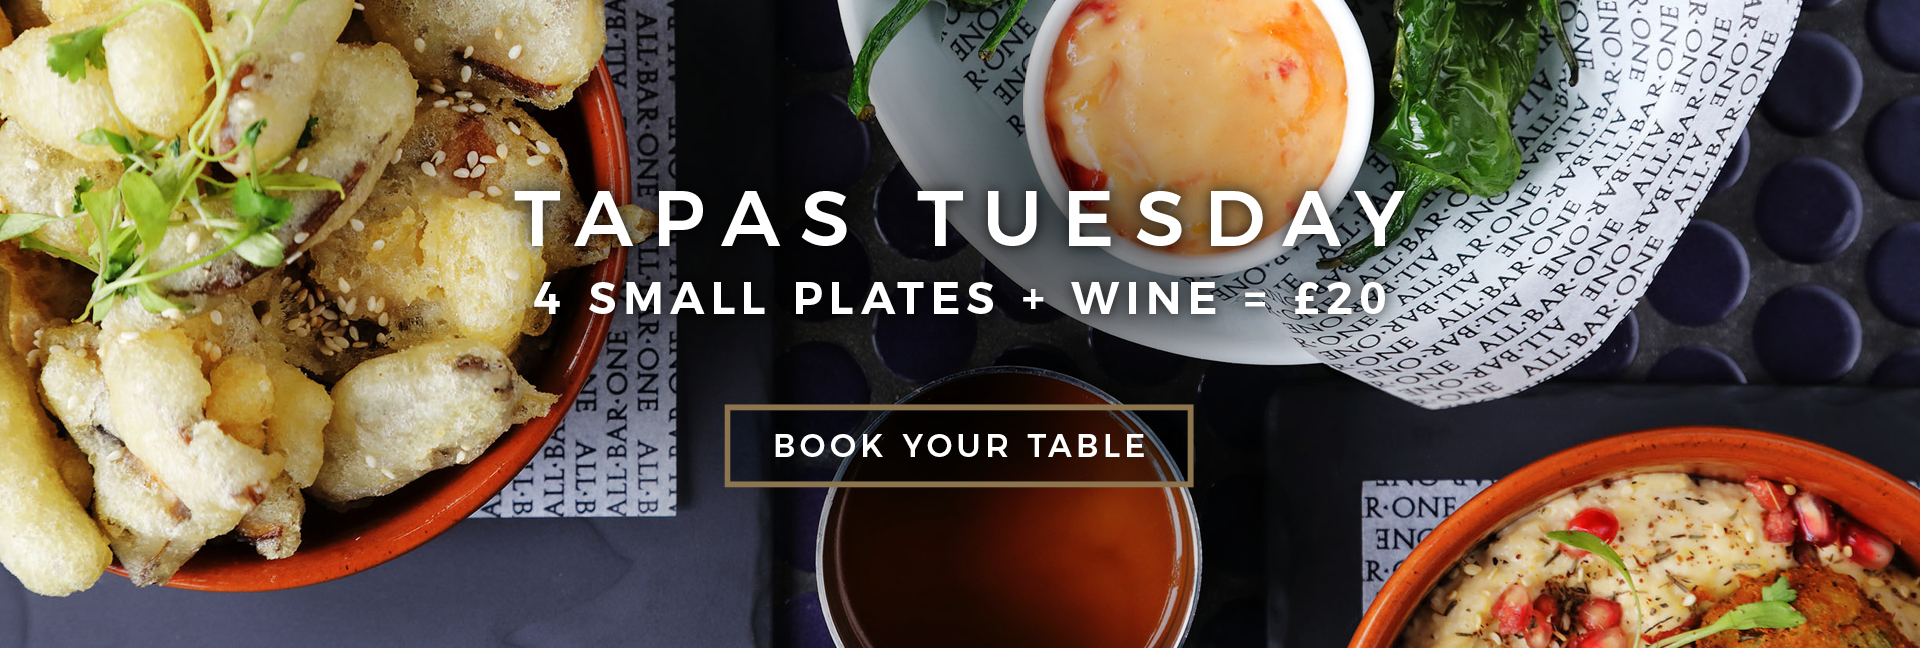 Tapas Tuesday at All Bar One Chiswell Street - Book now